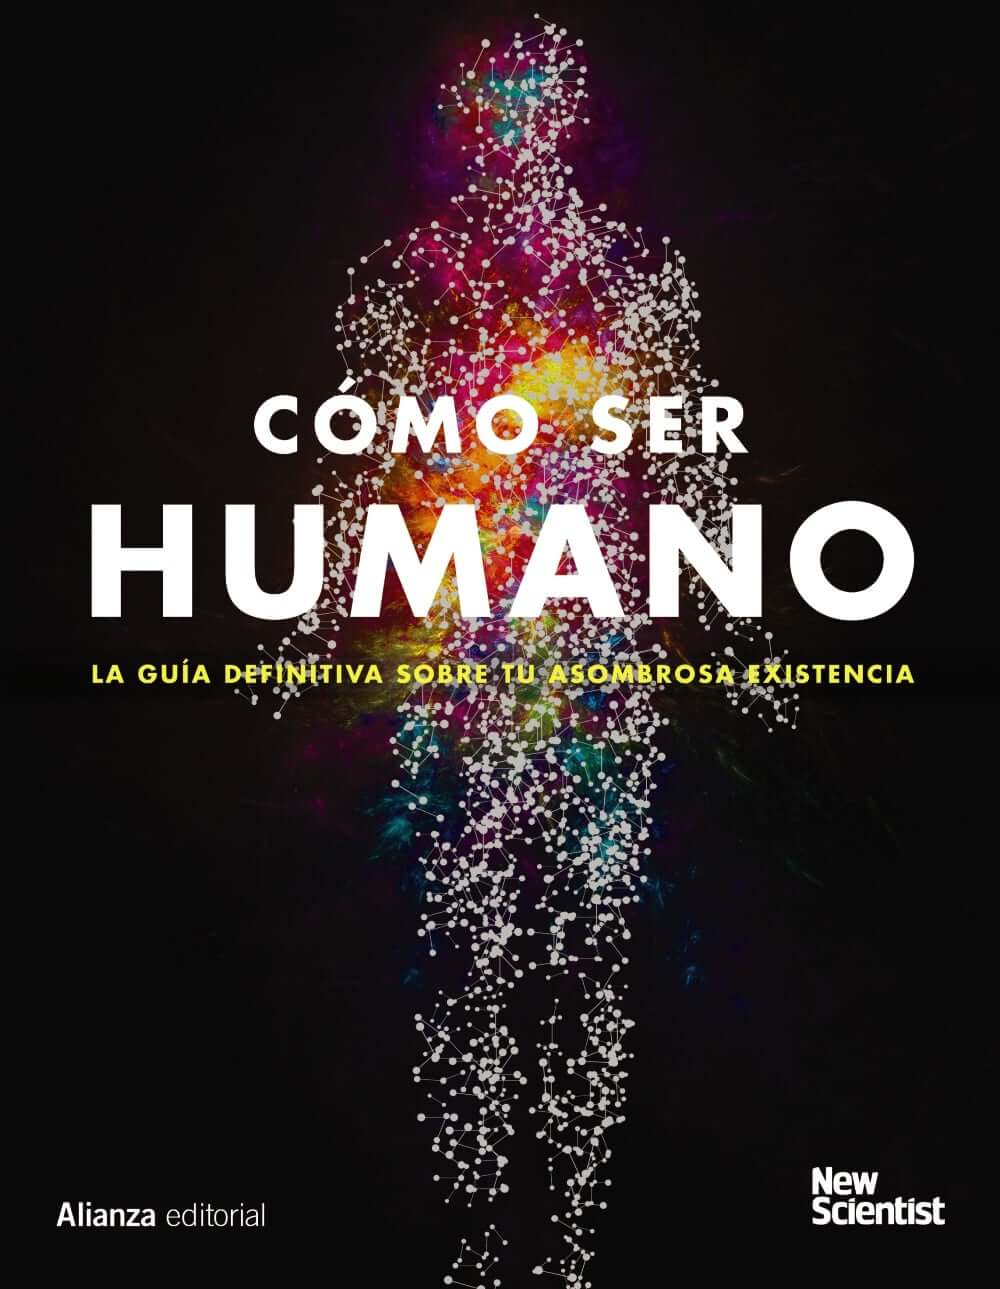 Cómo ser humano -   New Scientist